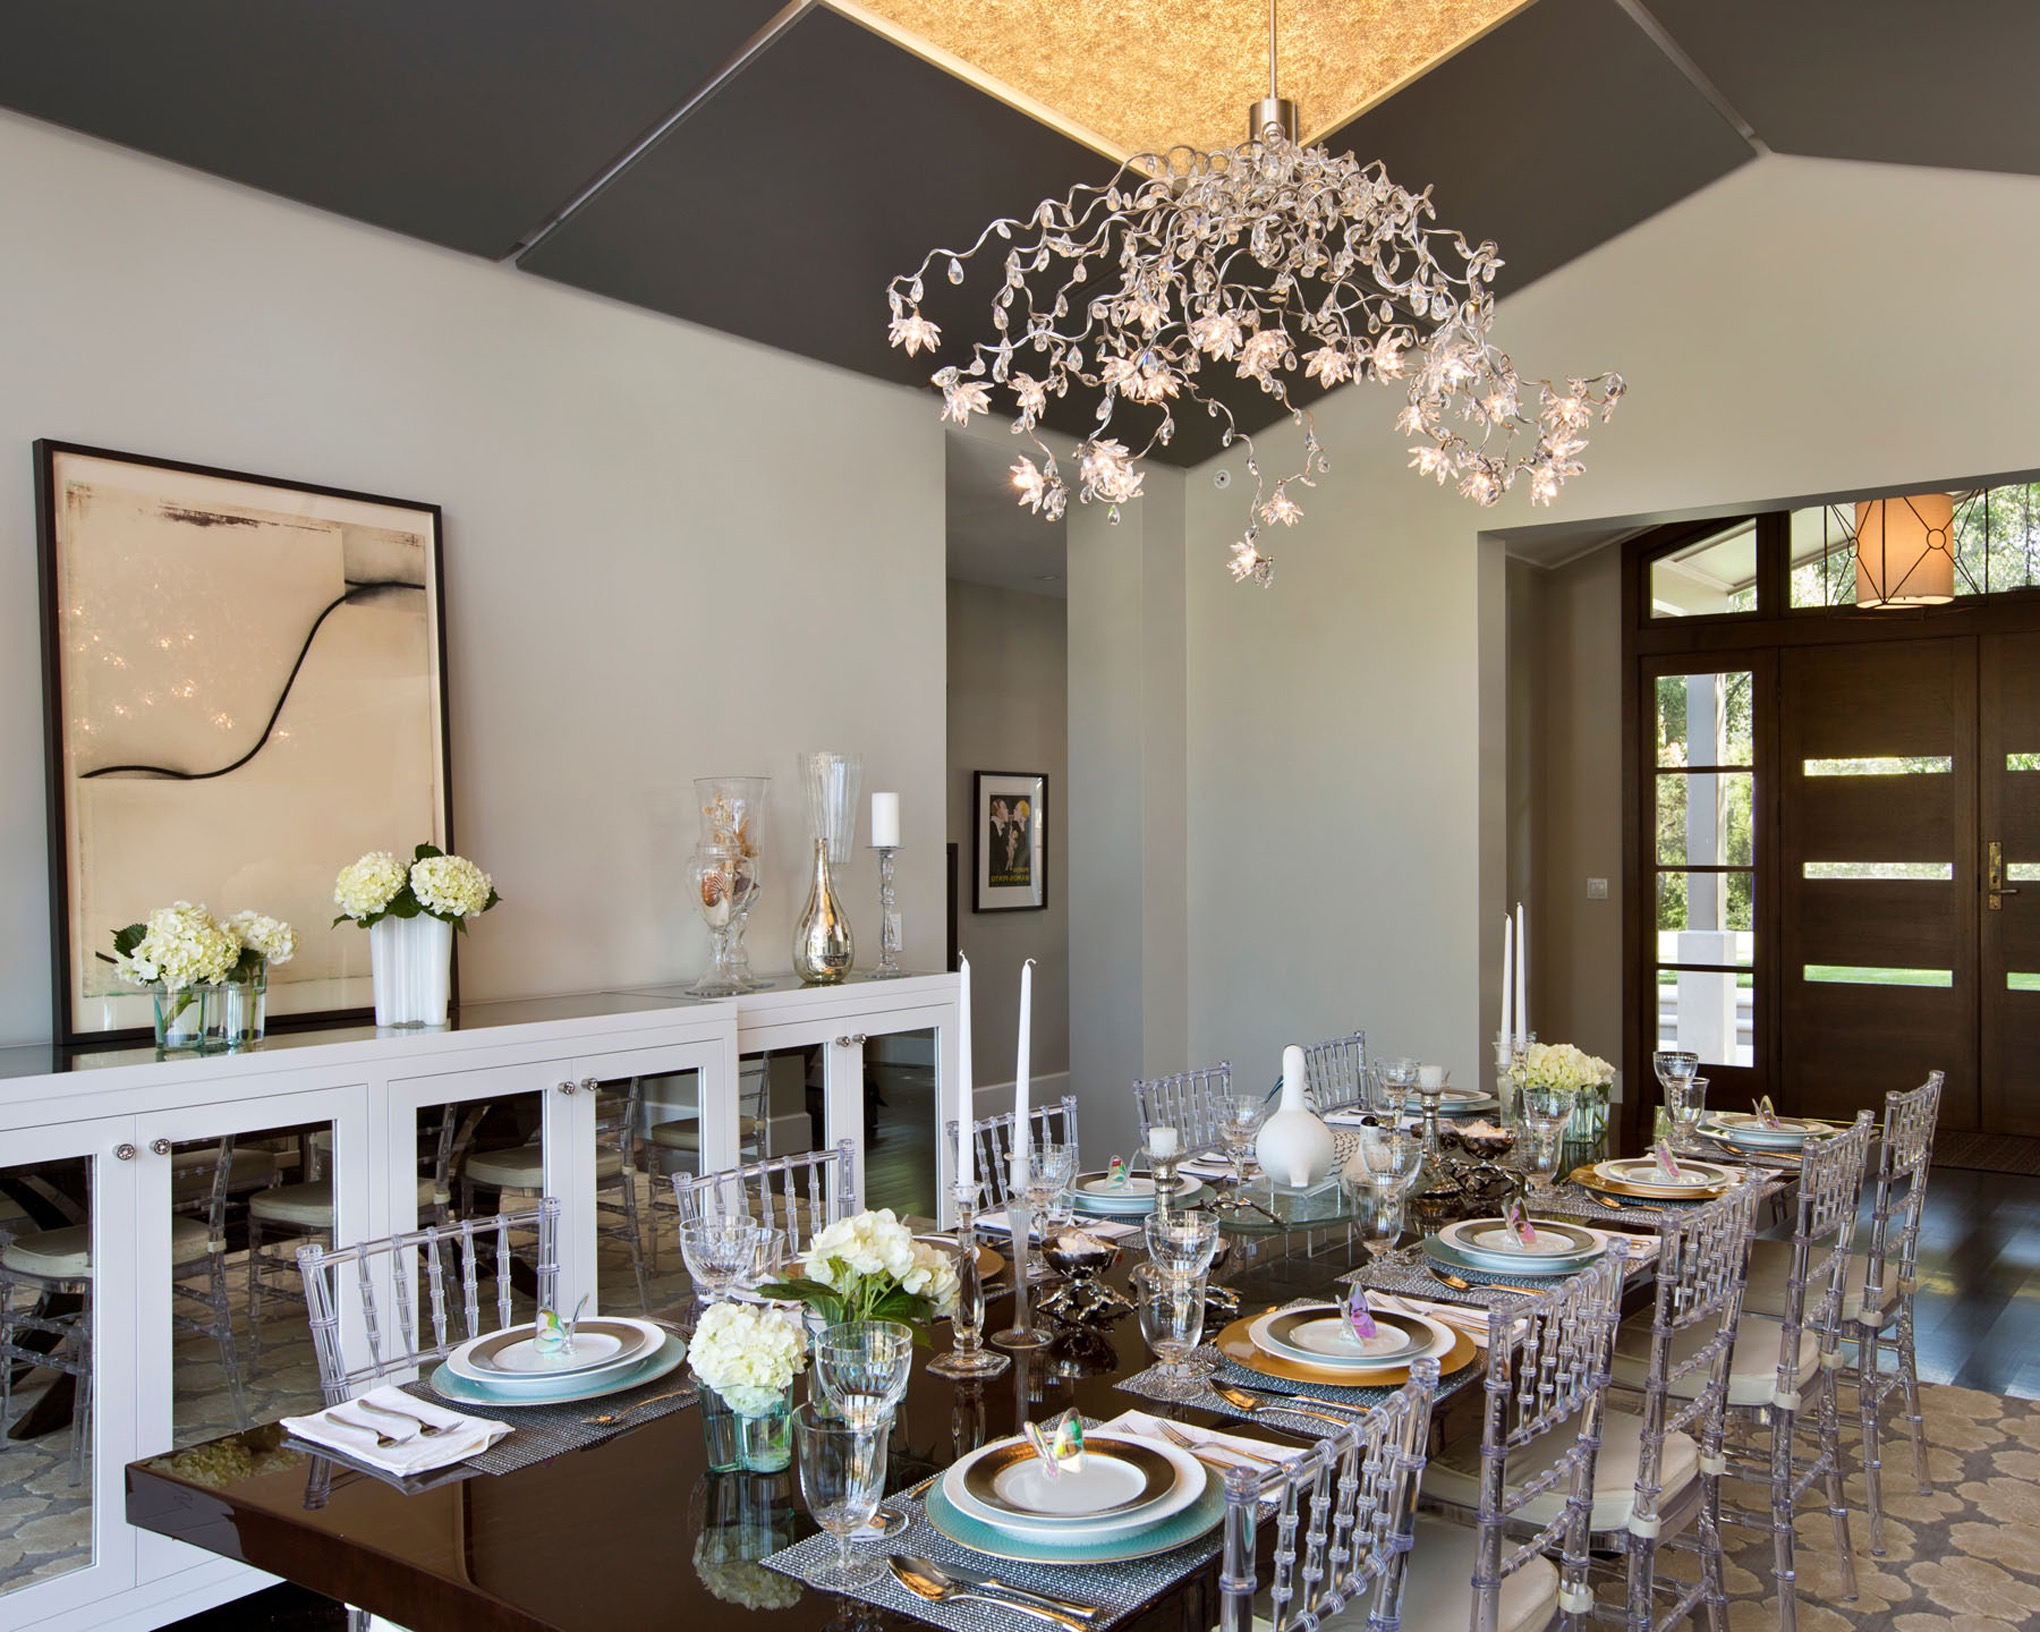 Contemporary Dining Room With Floral Chandelier For Christmas (Image 5 of 32)